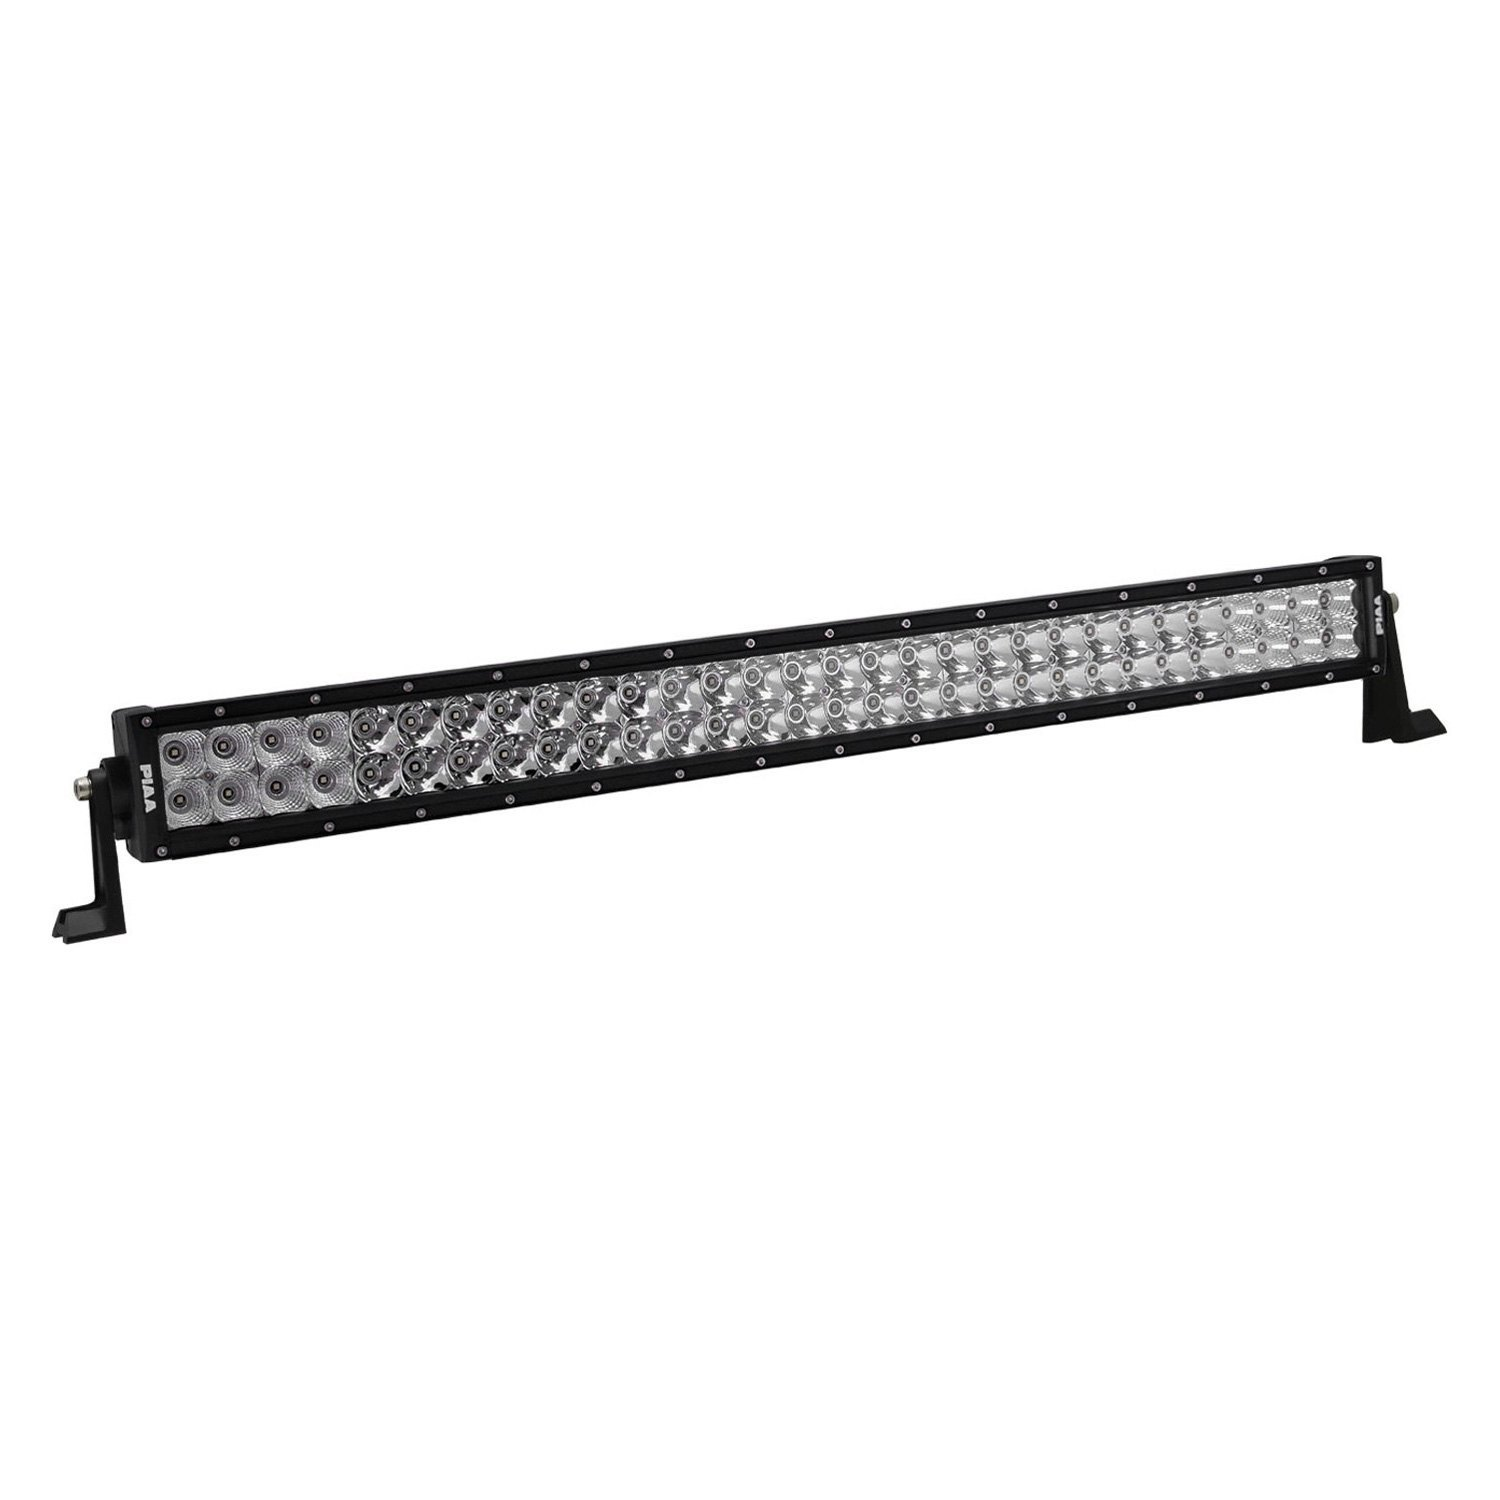 Piaa 174 Quad Series 30 Quot 180w Dual Row Led Light Bar